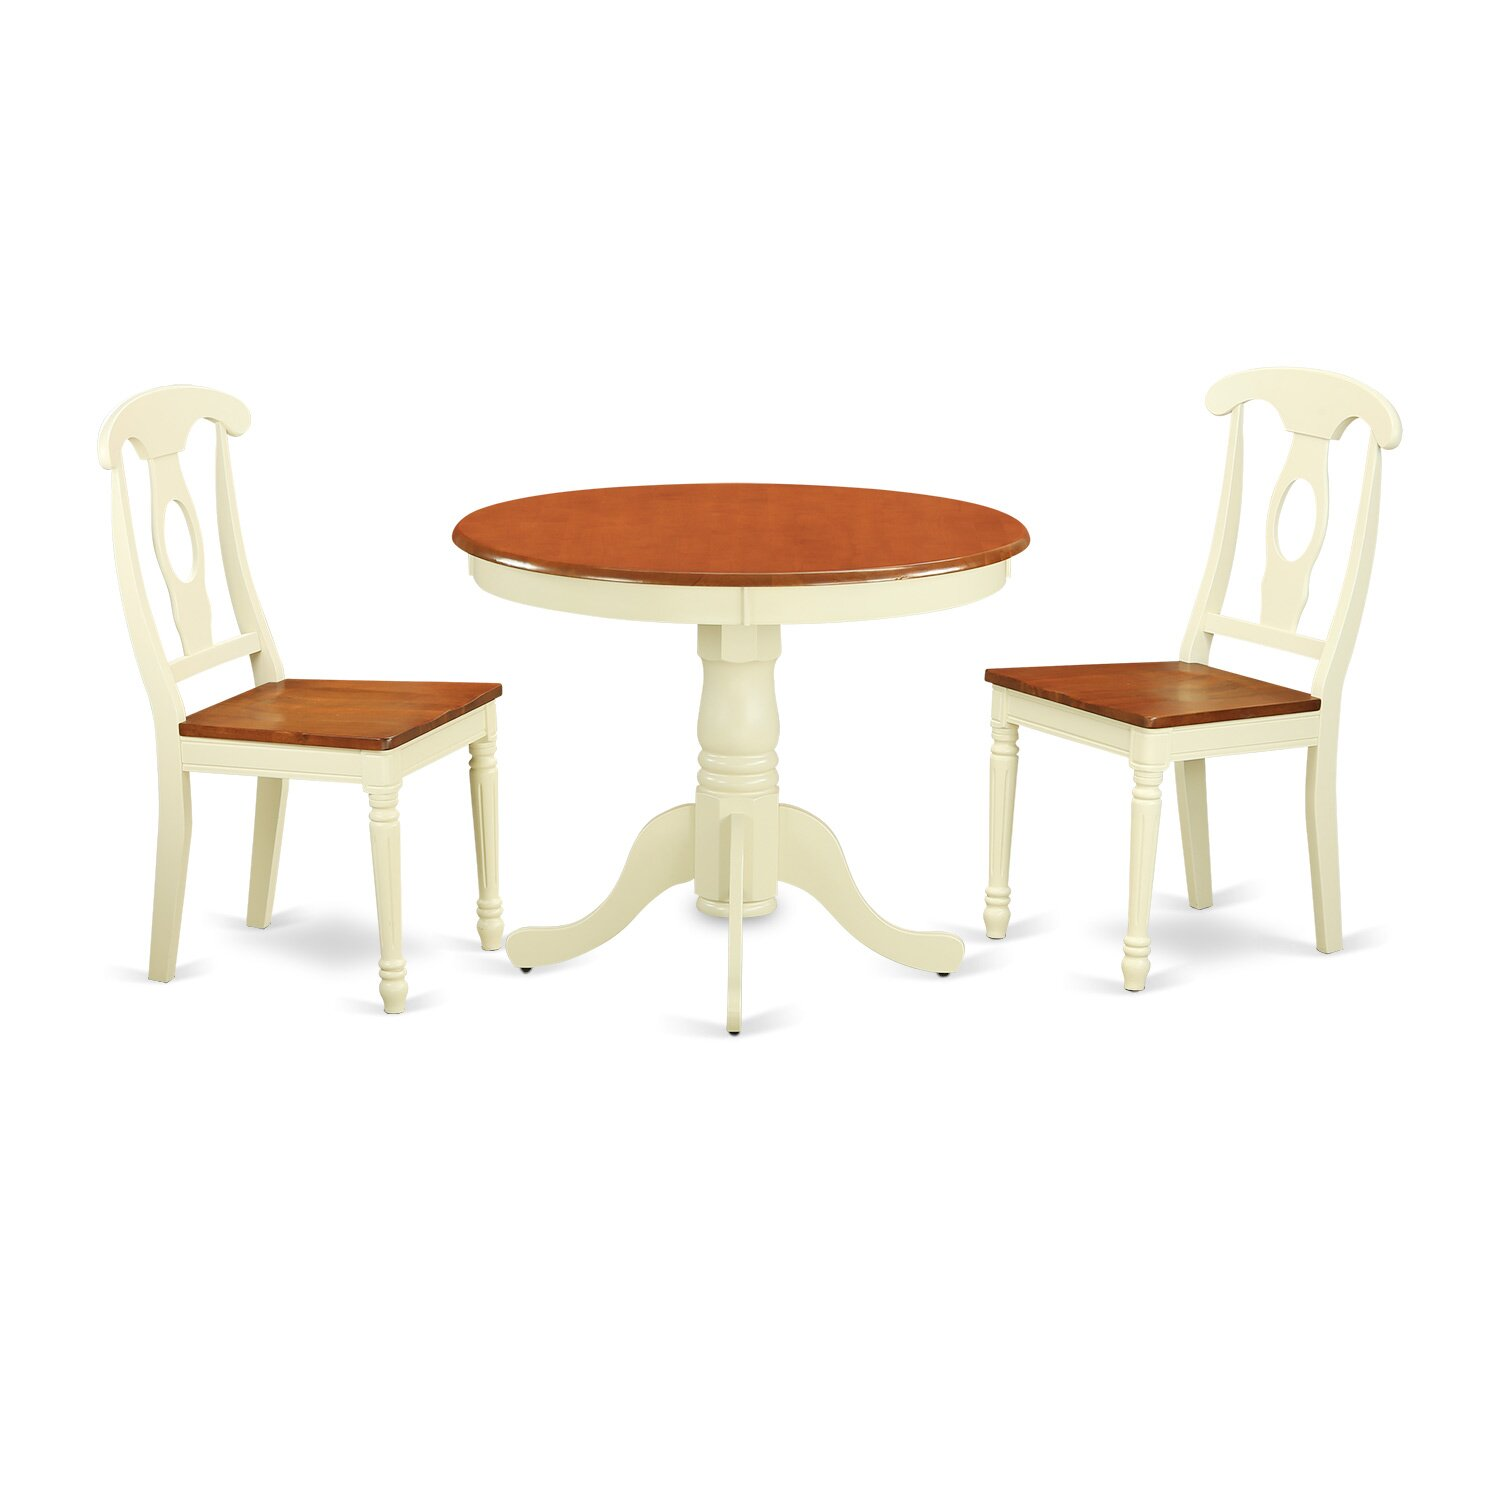 3 piece dining set wayfair for Dinette table and chairs